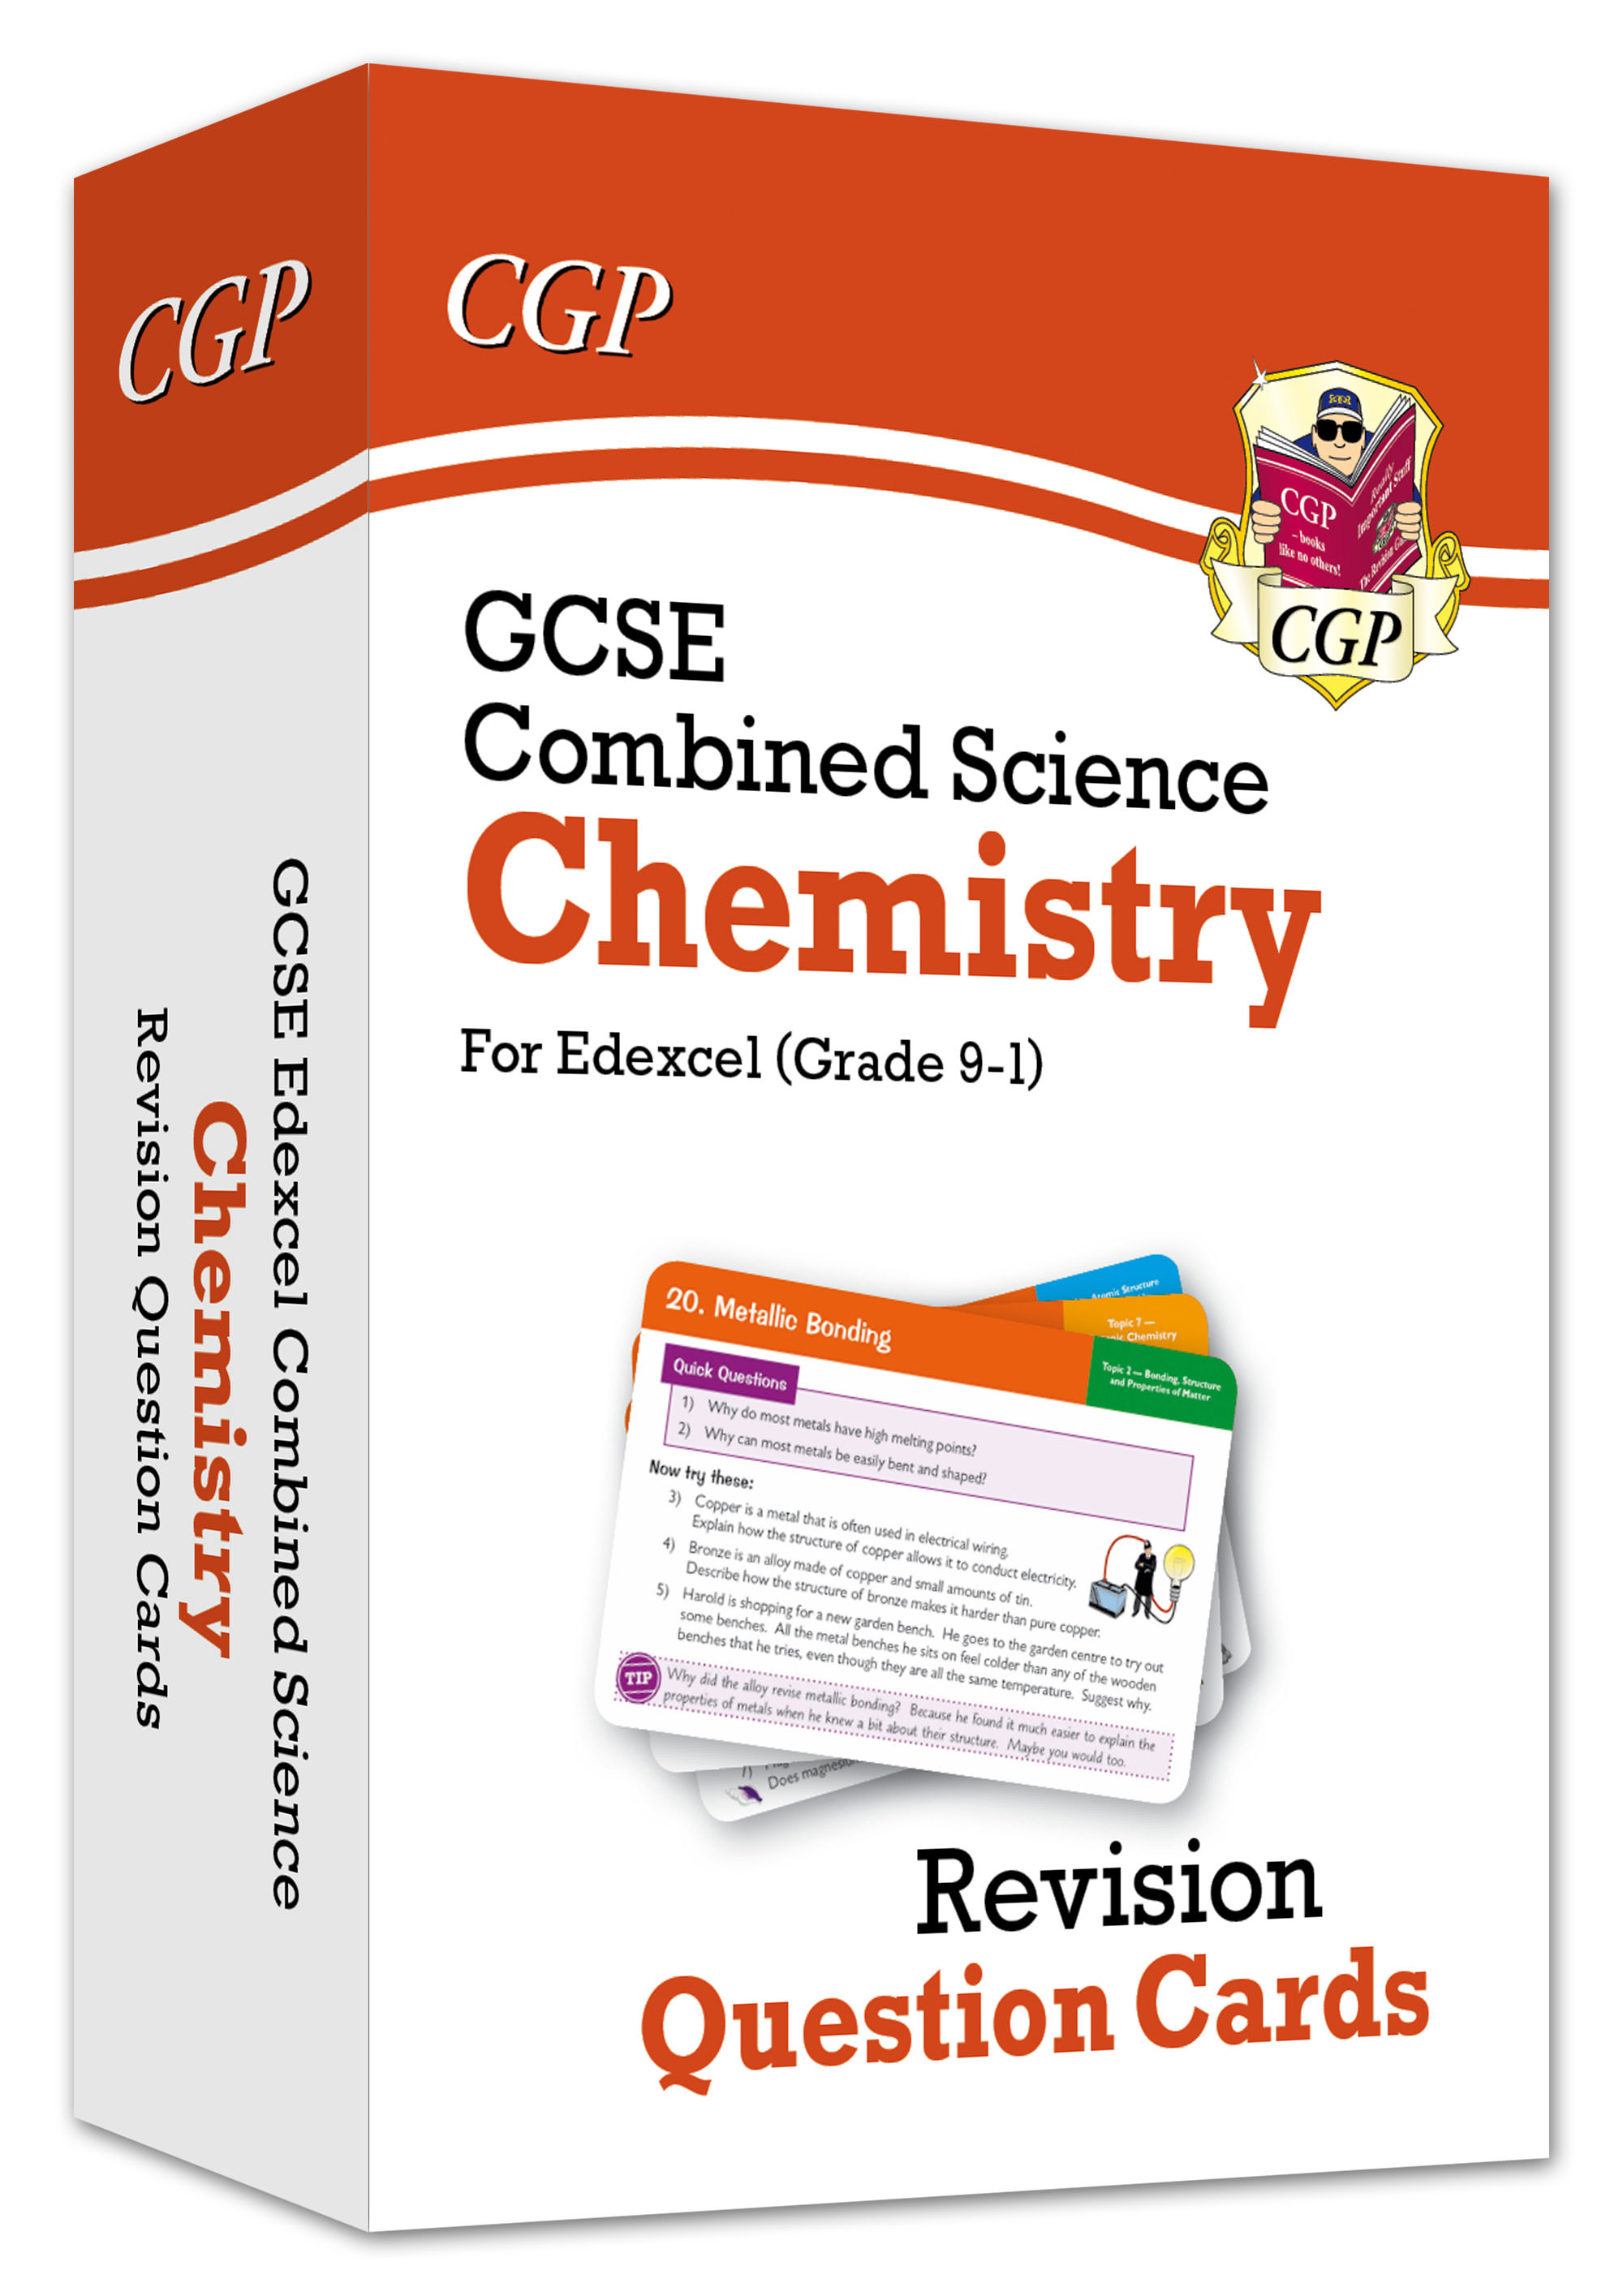 SCCEF41 - New 9-1 GCSE Combined Science: Chemistry Edexcel Revision Question Cards